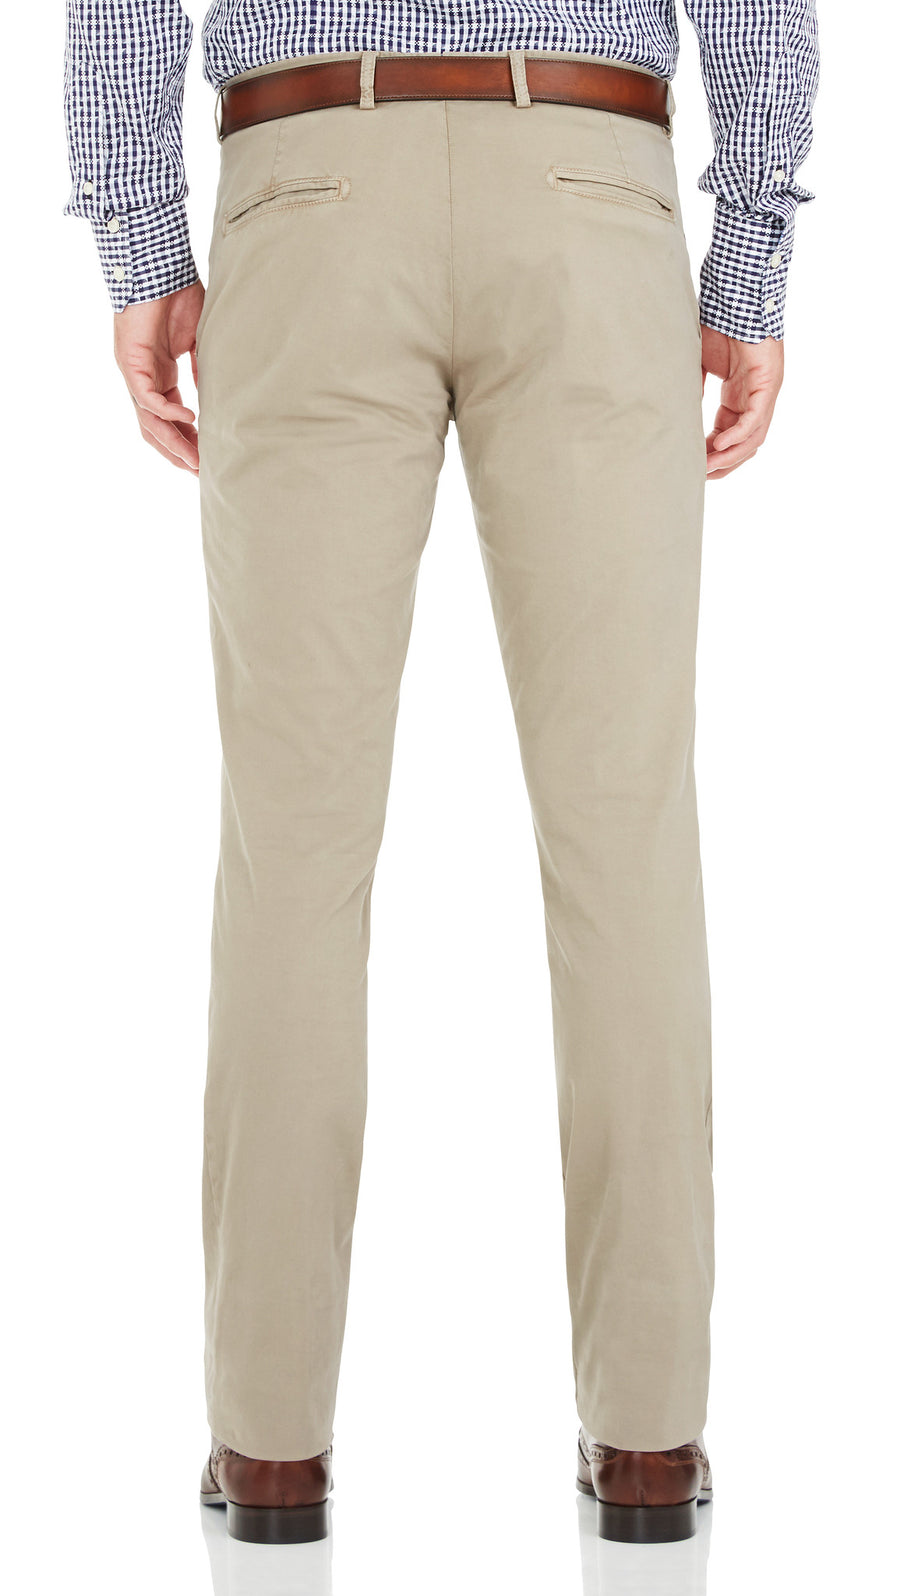 Bennett Cotton Chinos in Taupe